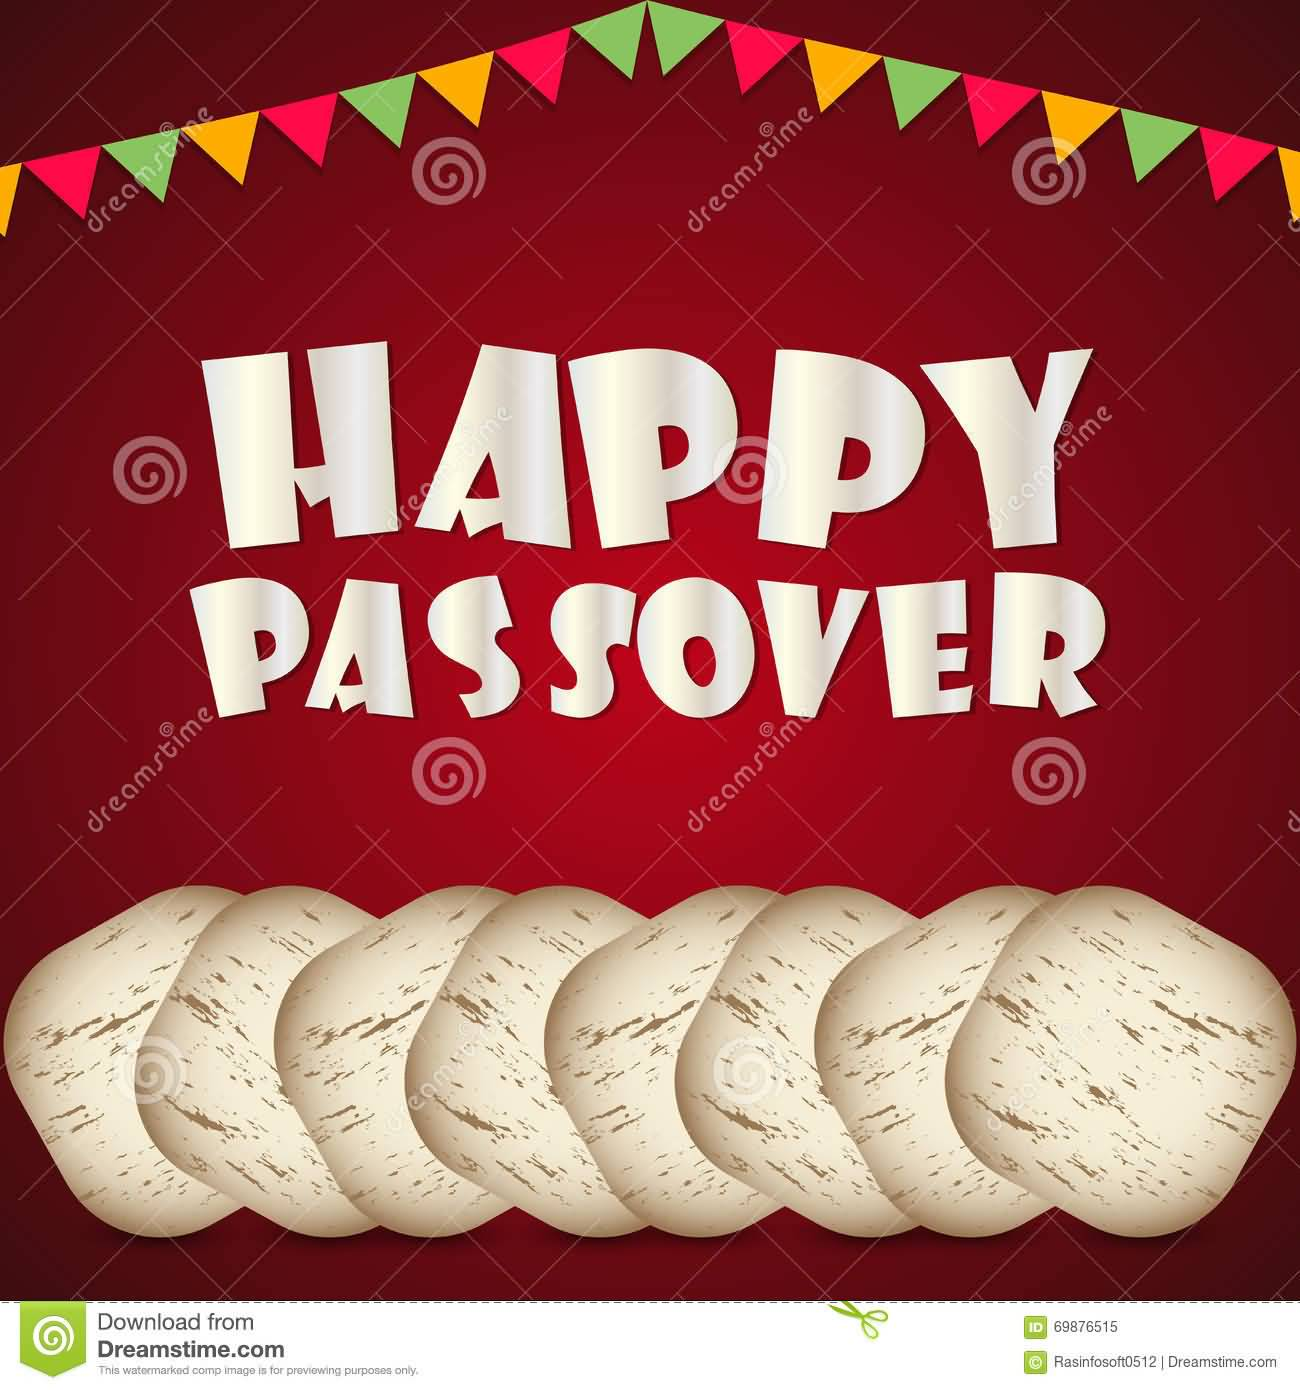 Happy passover greetings message image nicewishes 17 happy passover wishes m4hsunfo